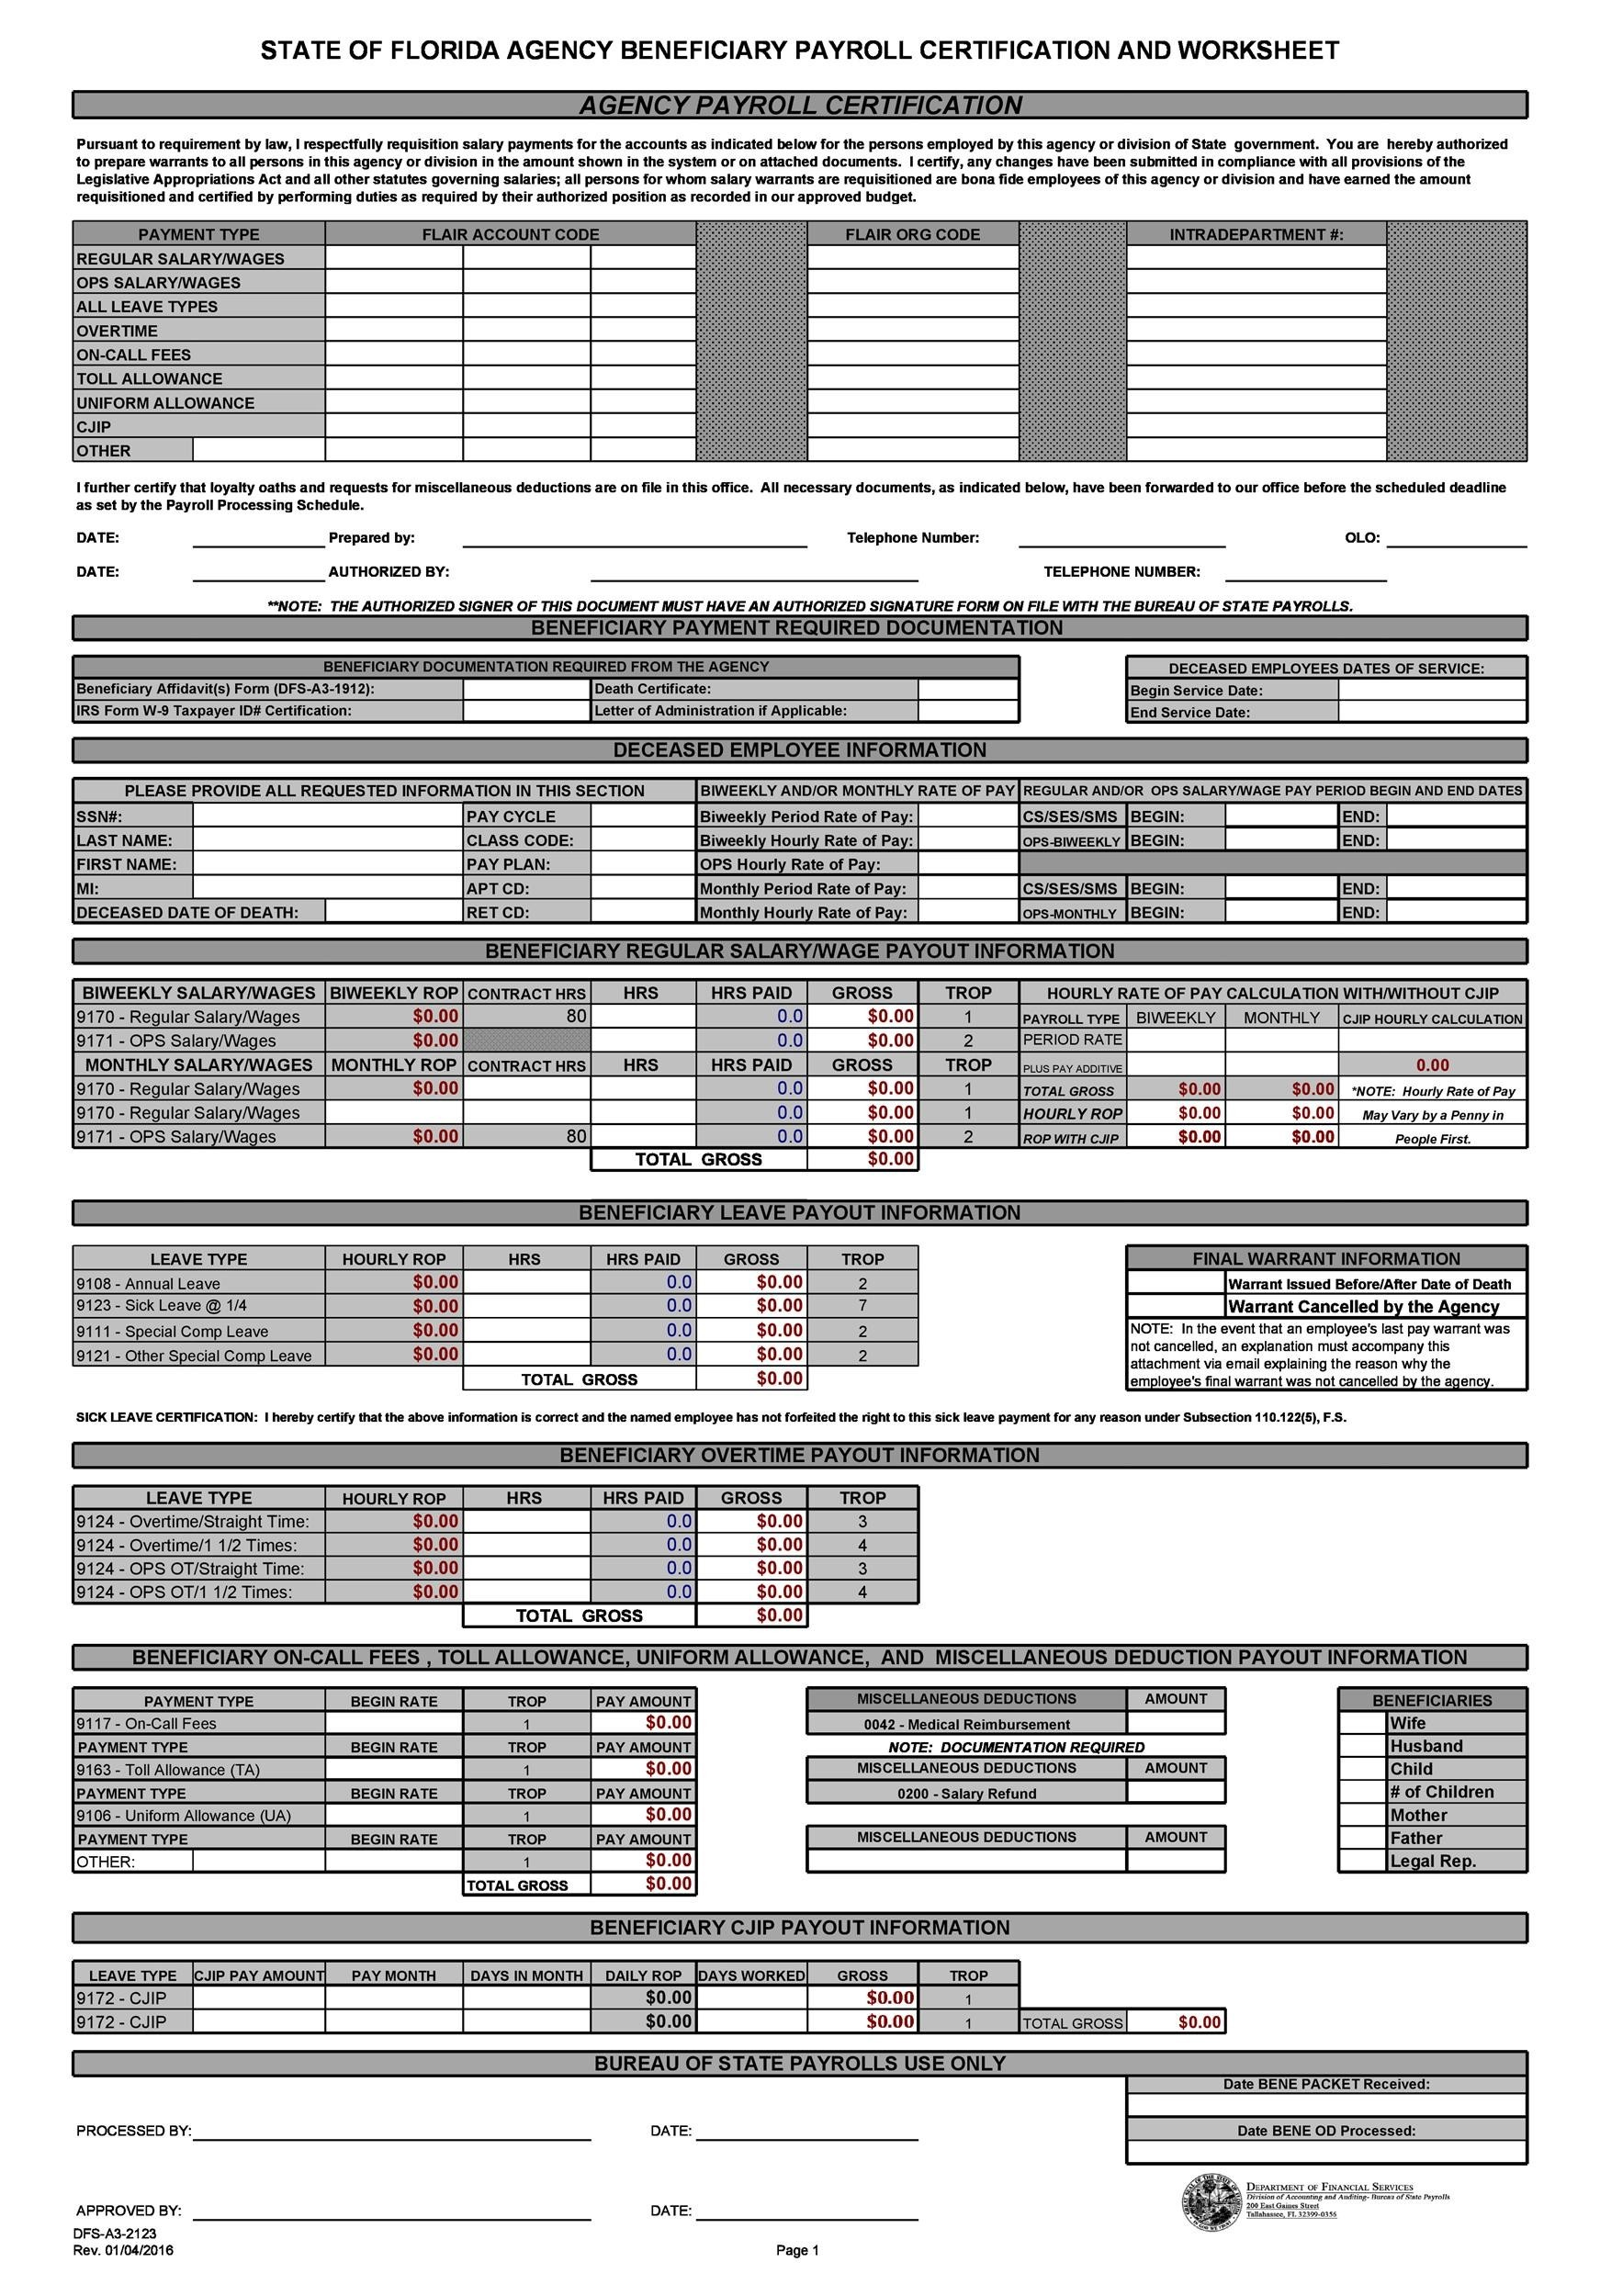 40+ Free Payroll Templates  Calculators - Template Lab - free printable payroll forms